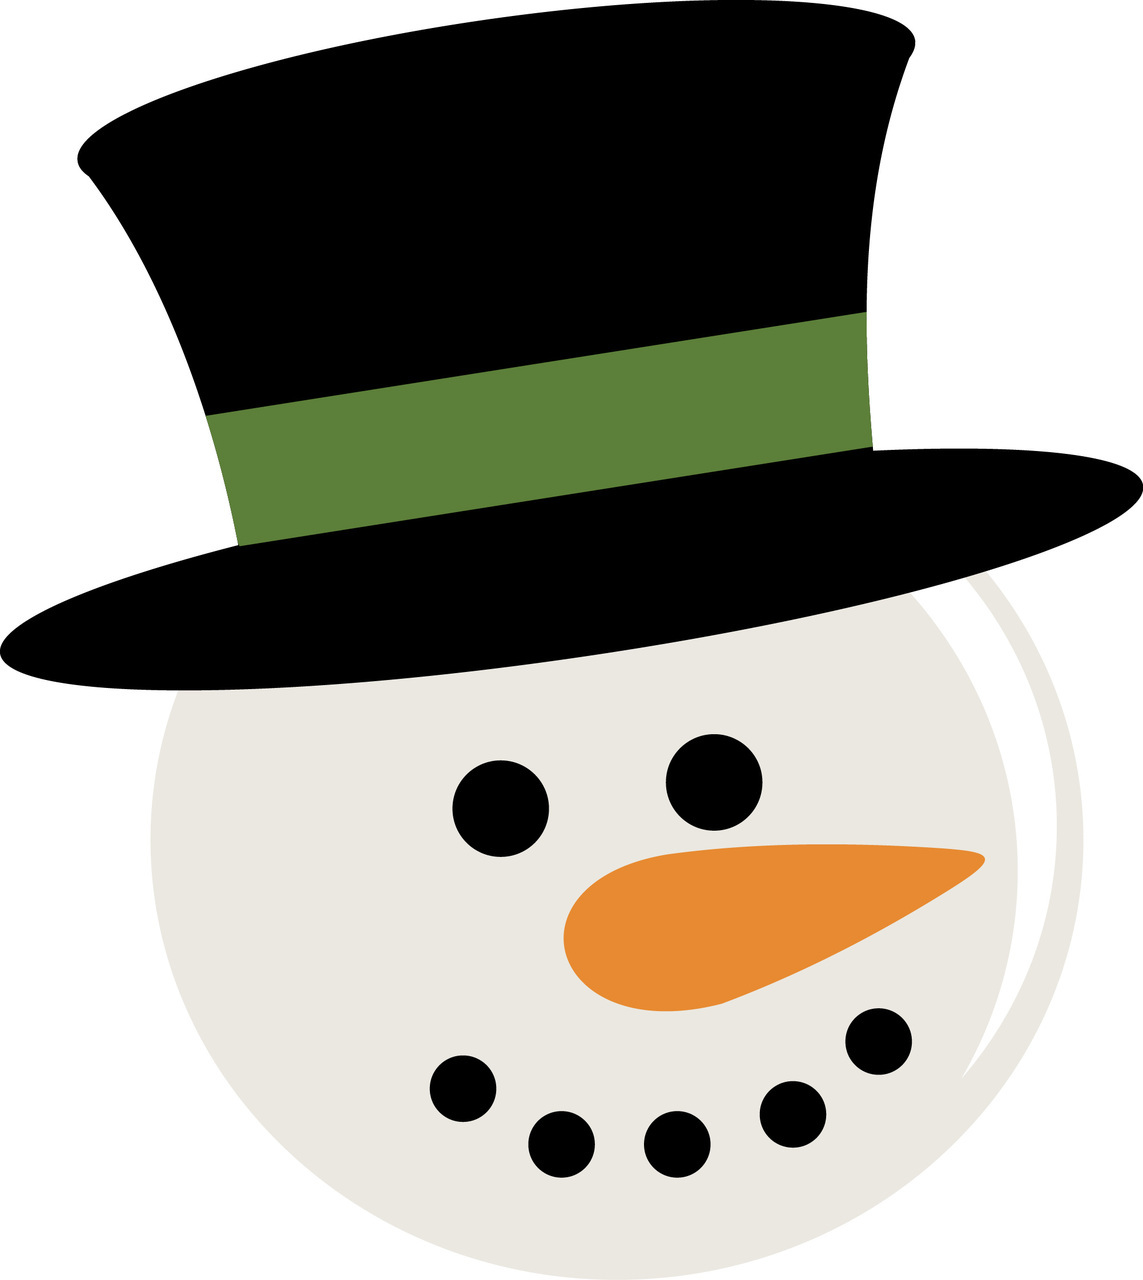 Snowman Head Ornament Clipart.